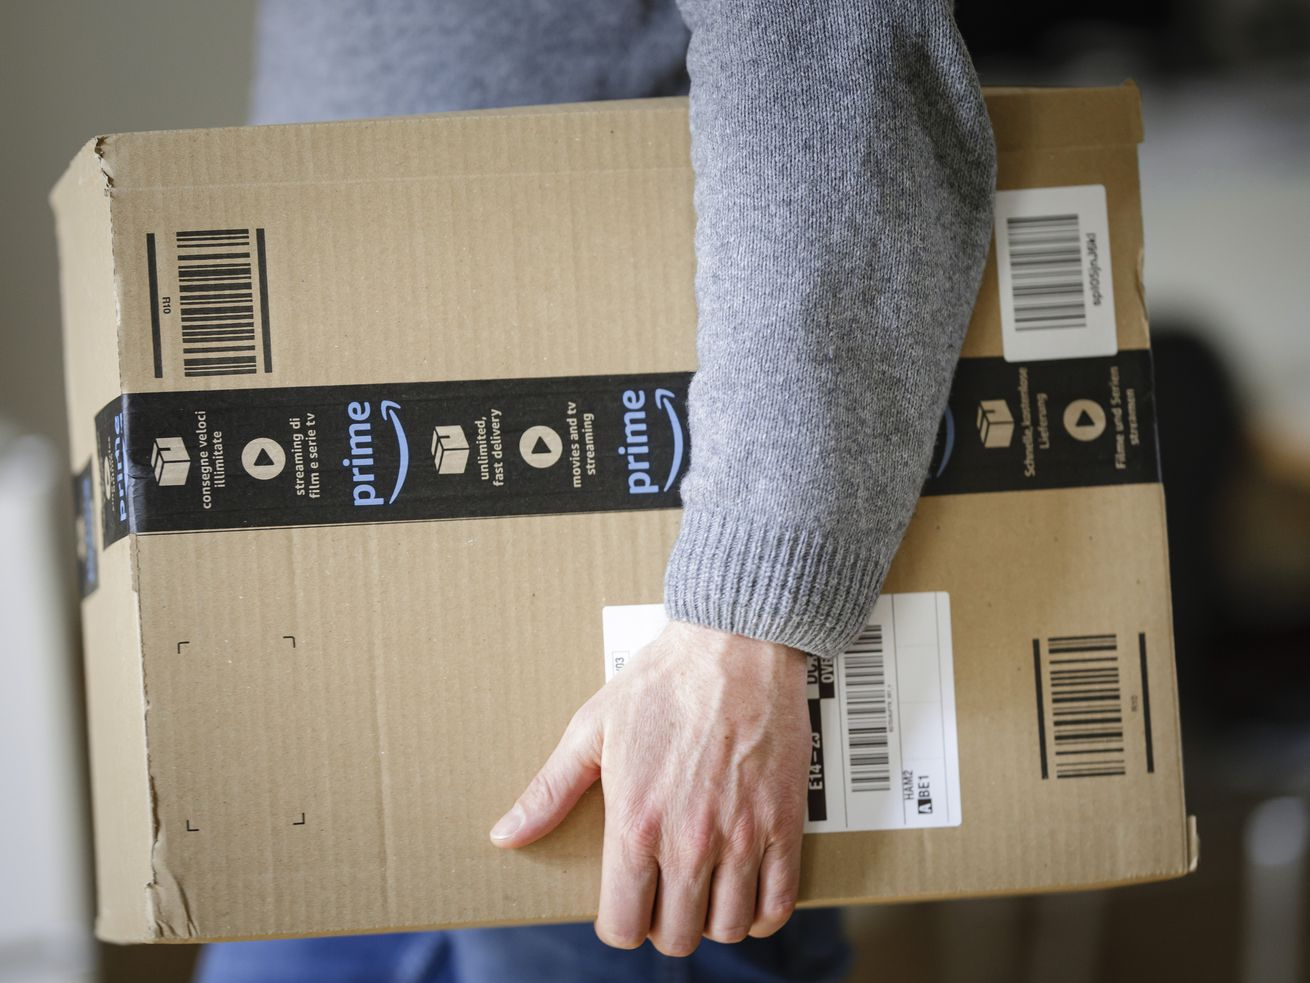 Amazon ousted thousands of merchants with no notice — showing the danger of relying on the shopping platform